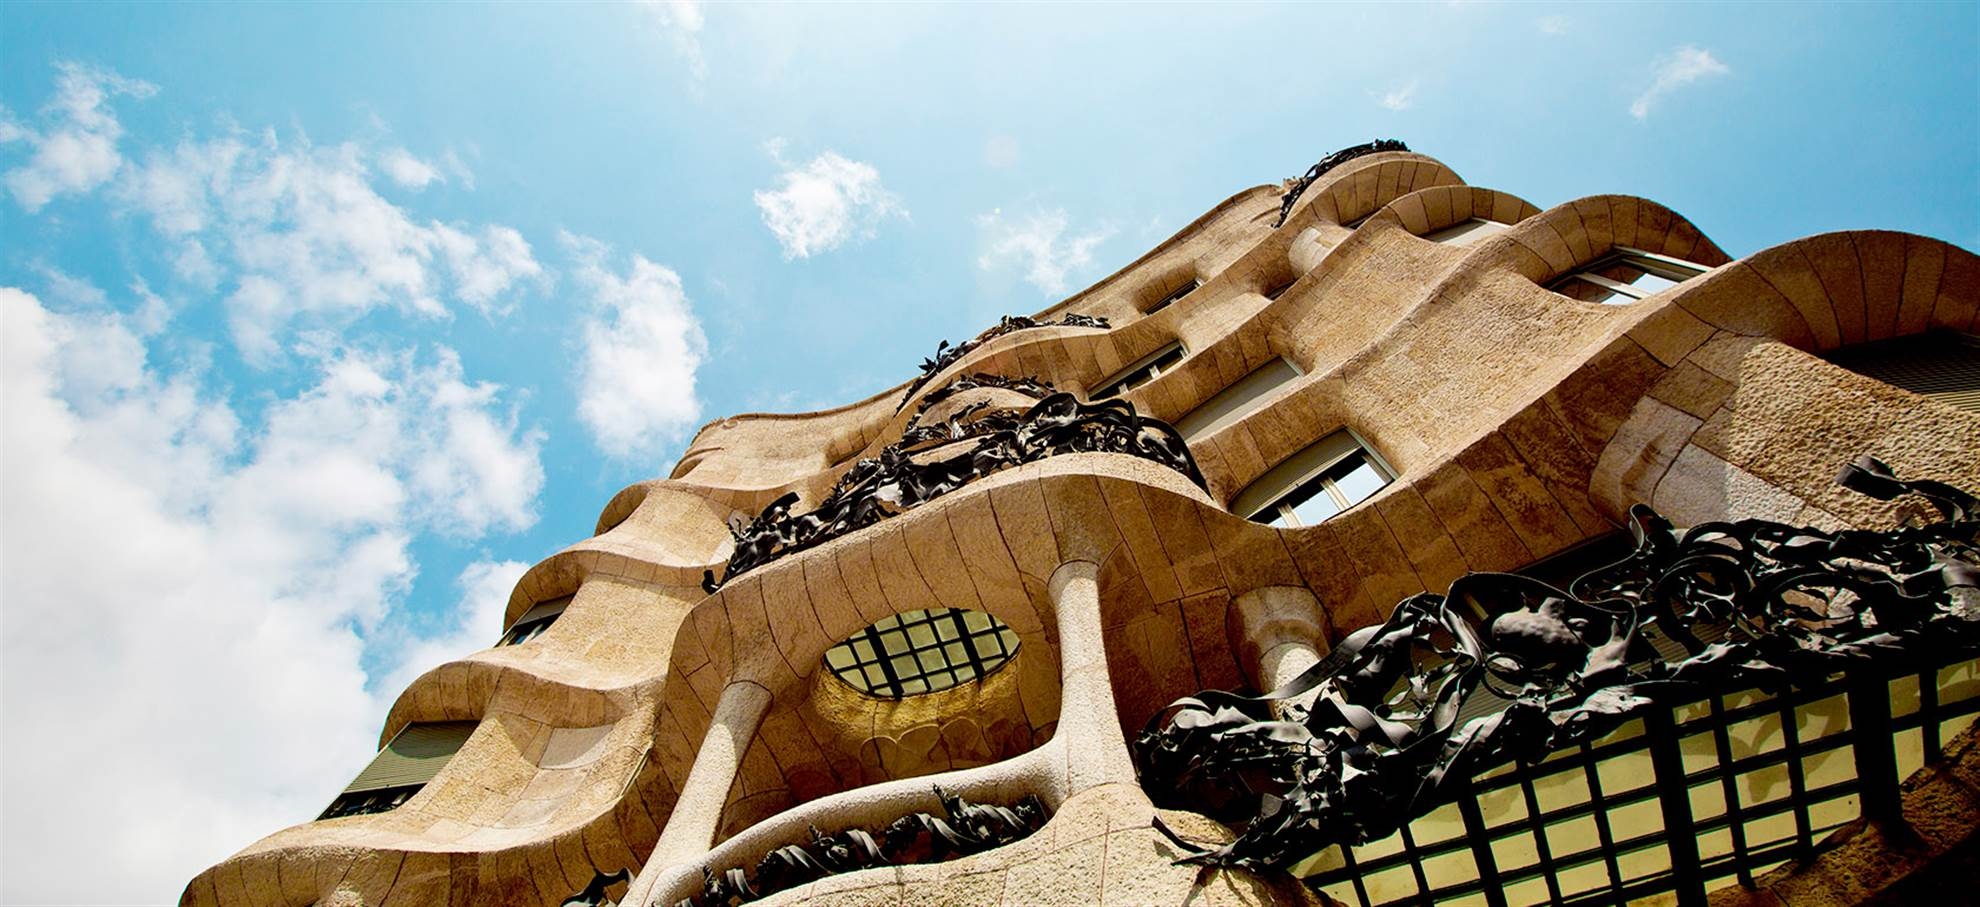 Billet coupe-file Casa Milà Barcelone